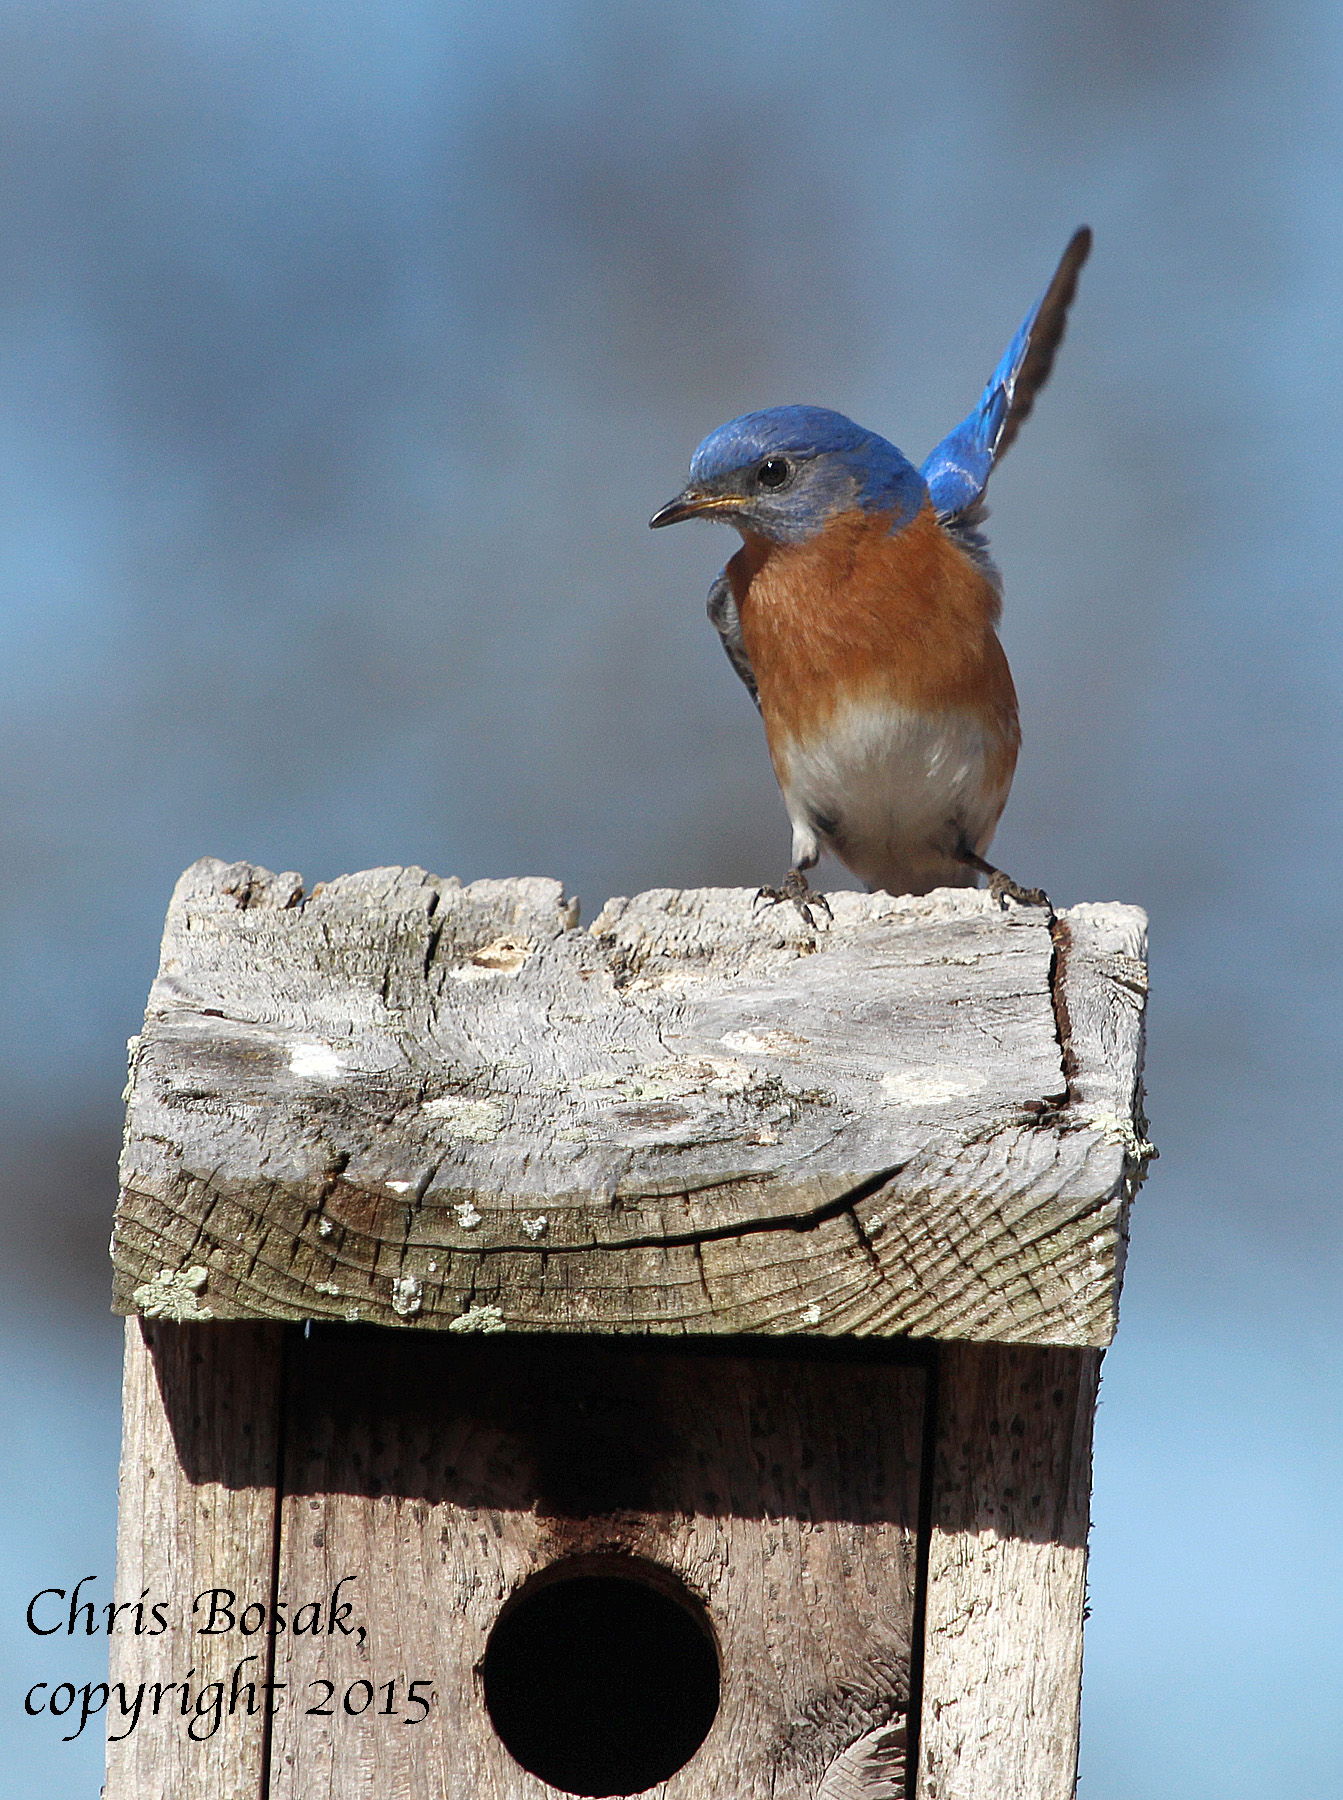 Photo by Chris Bosak An Eastern Bluebird stretches a wing as it rests on a birdhouse at Mather Meadows in Darien, Conn., April 2015.